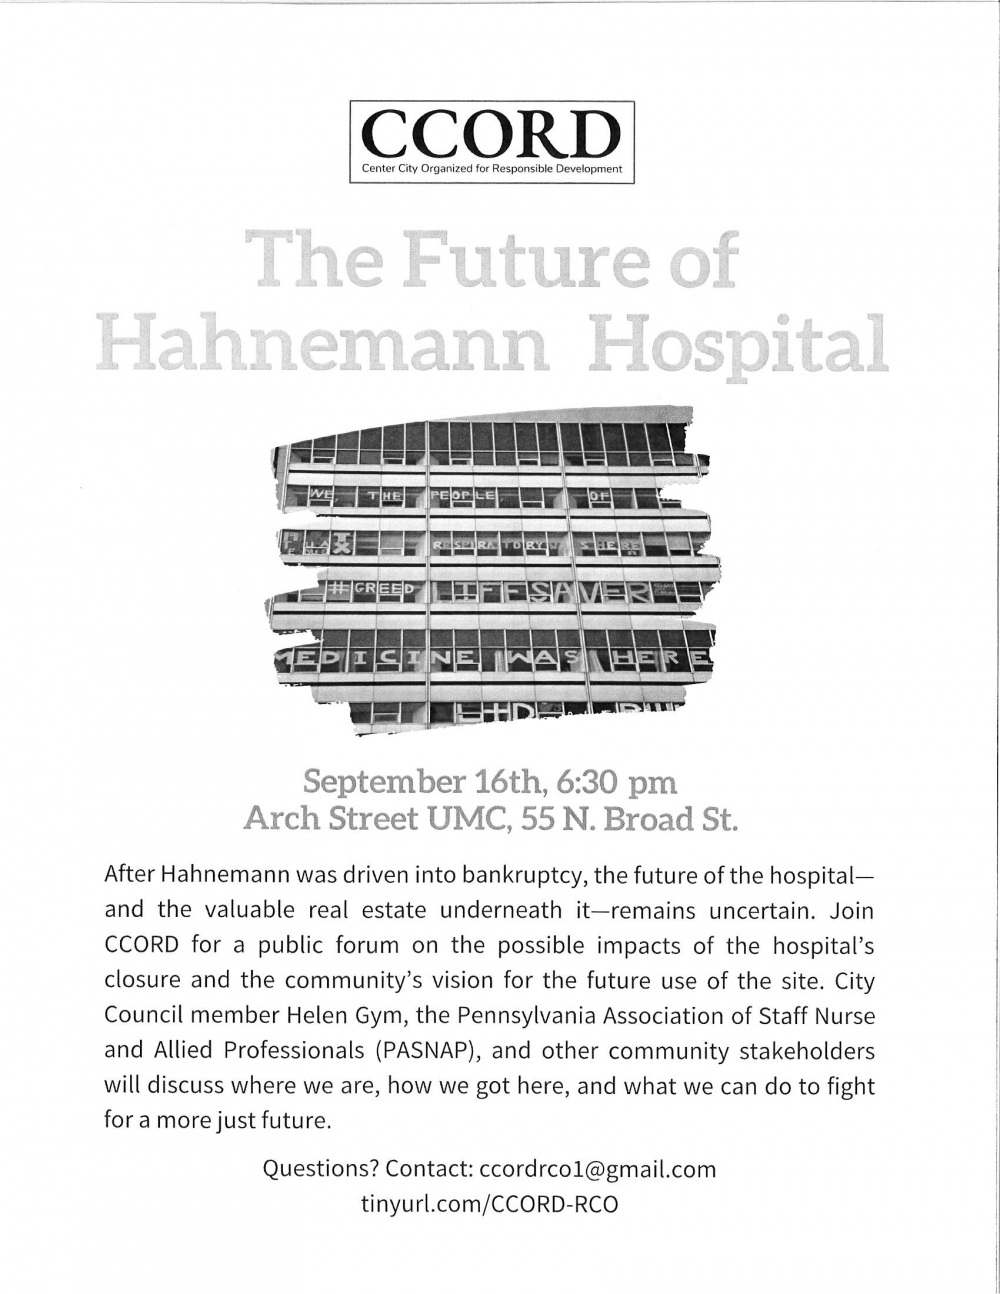 The Future of Hahnemann Hospital, Sept 16, 6:30pm